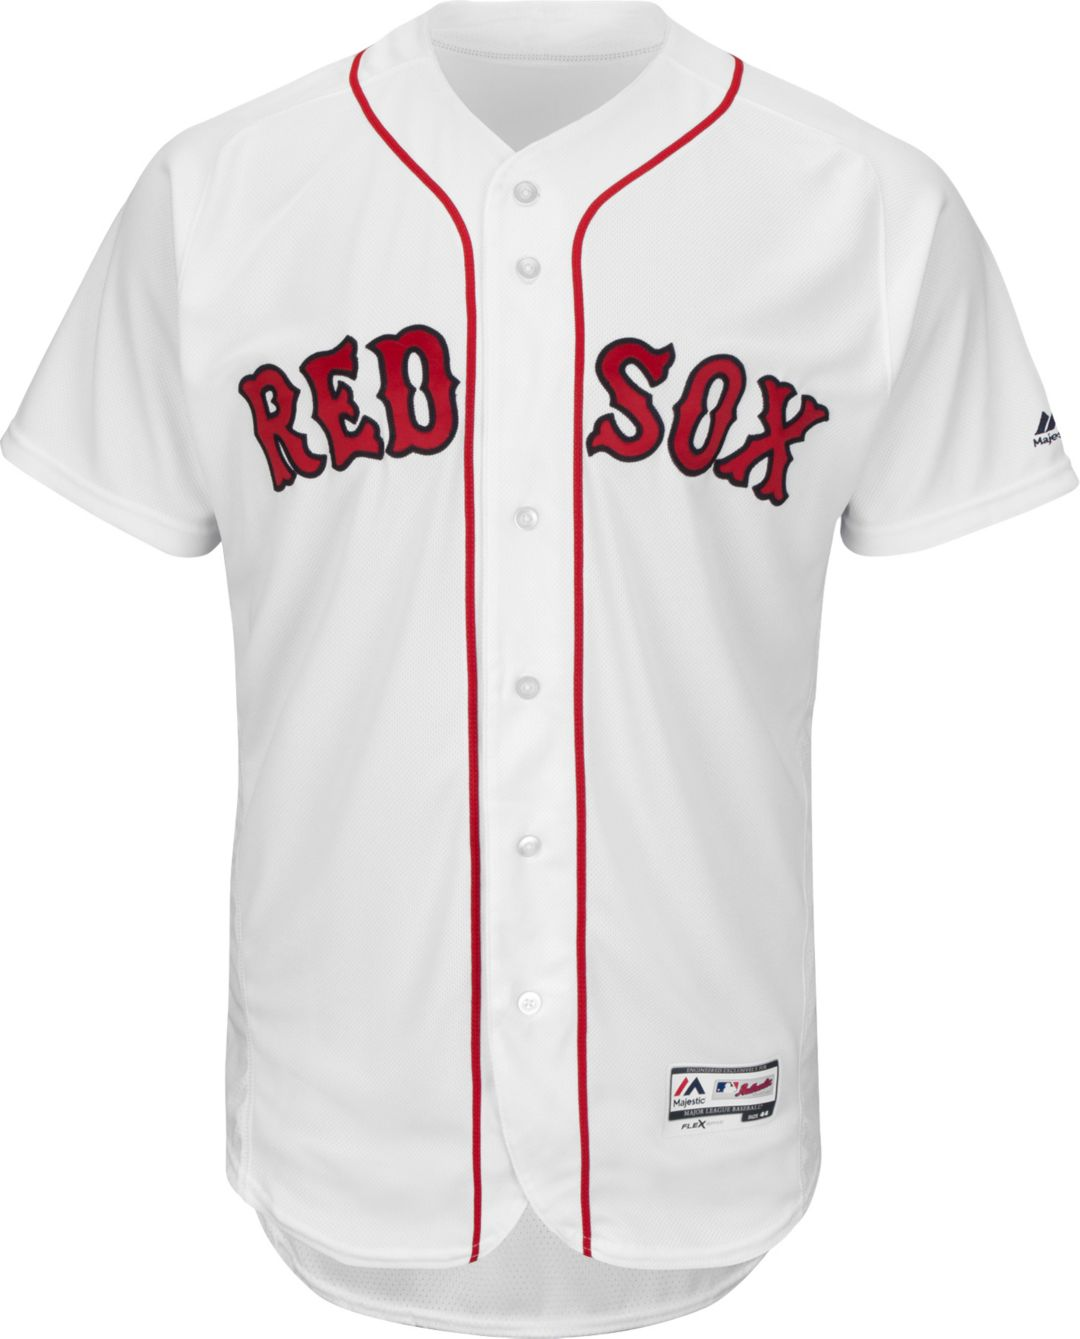 new style a7559 e9830 Majestic Men's Authentic Boston Red Sox Home White Flex Base On-Field Jersey